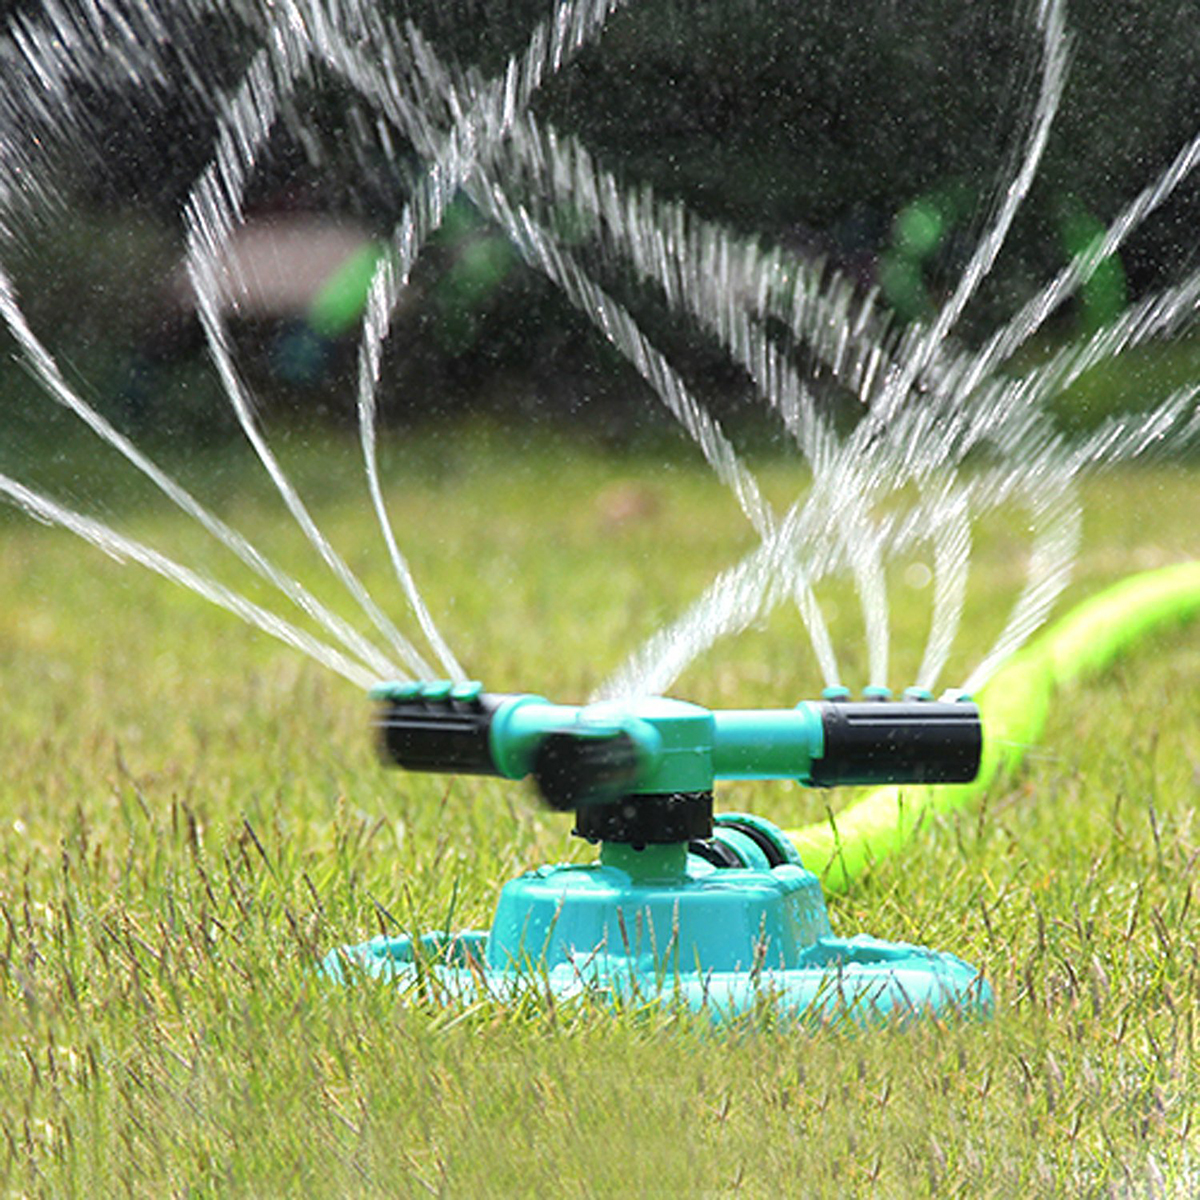 Watering Head Garden Brass Supplies Lawn Sprinkler Garden Sprinklers Water  Durable Rotary Three Arm Water Sprinkler